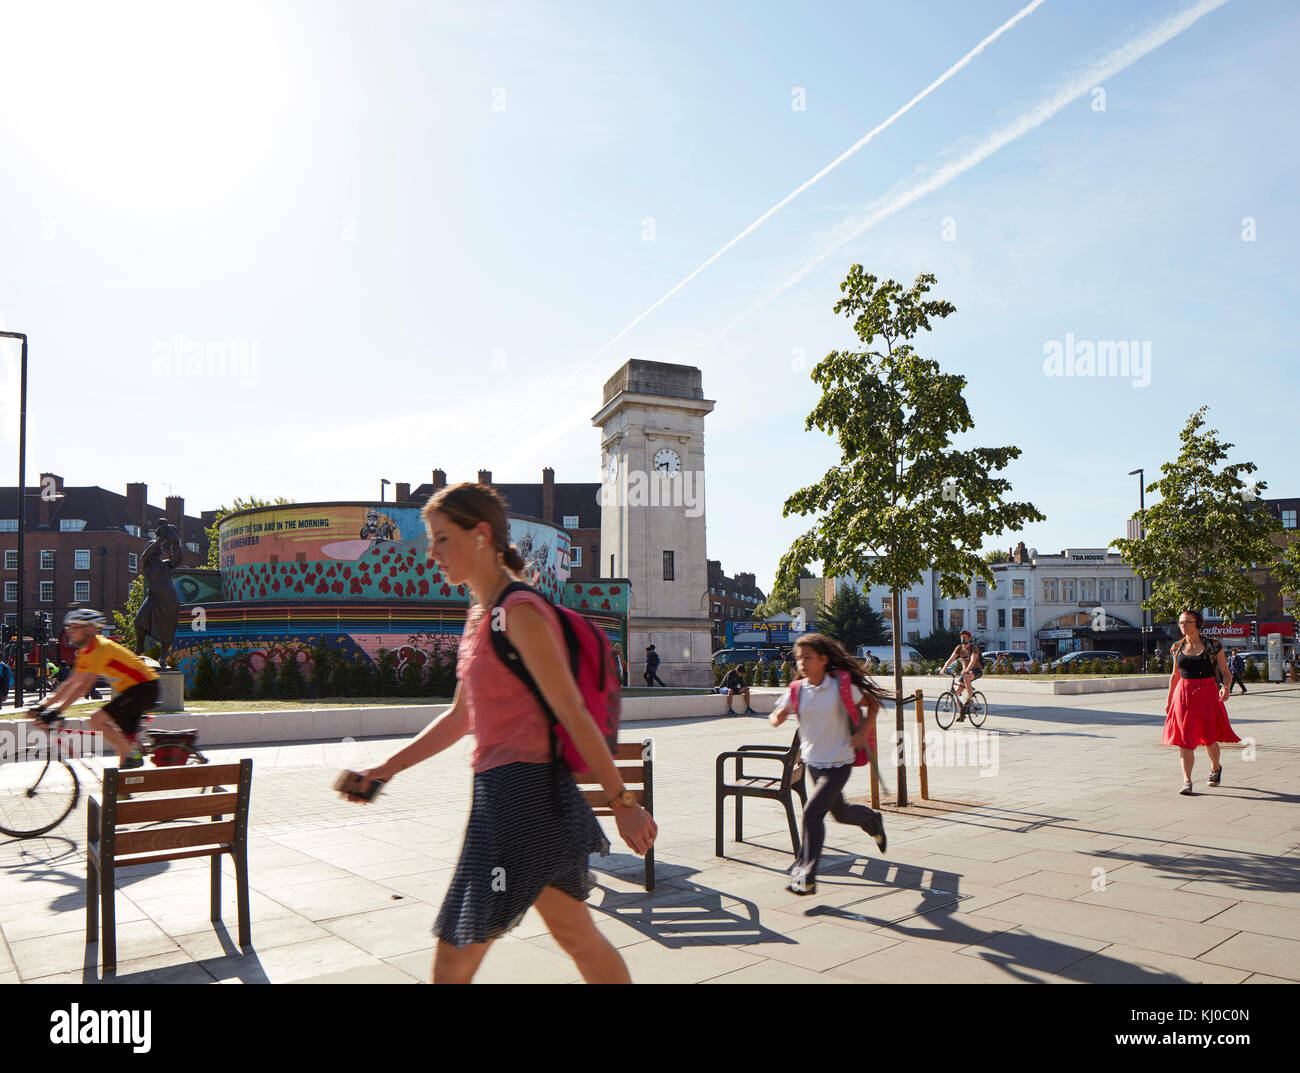 Stockwell War Memorial with bicycle lane and pedestrians. Stockwell Framework Masterplan, London, United Kingdom. - Stock Image